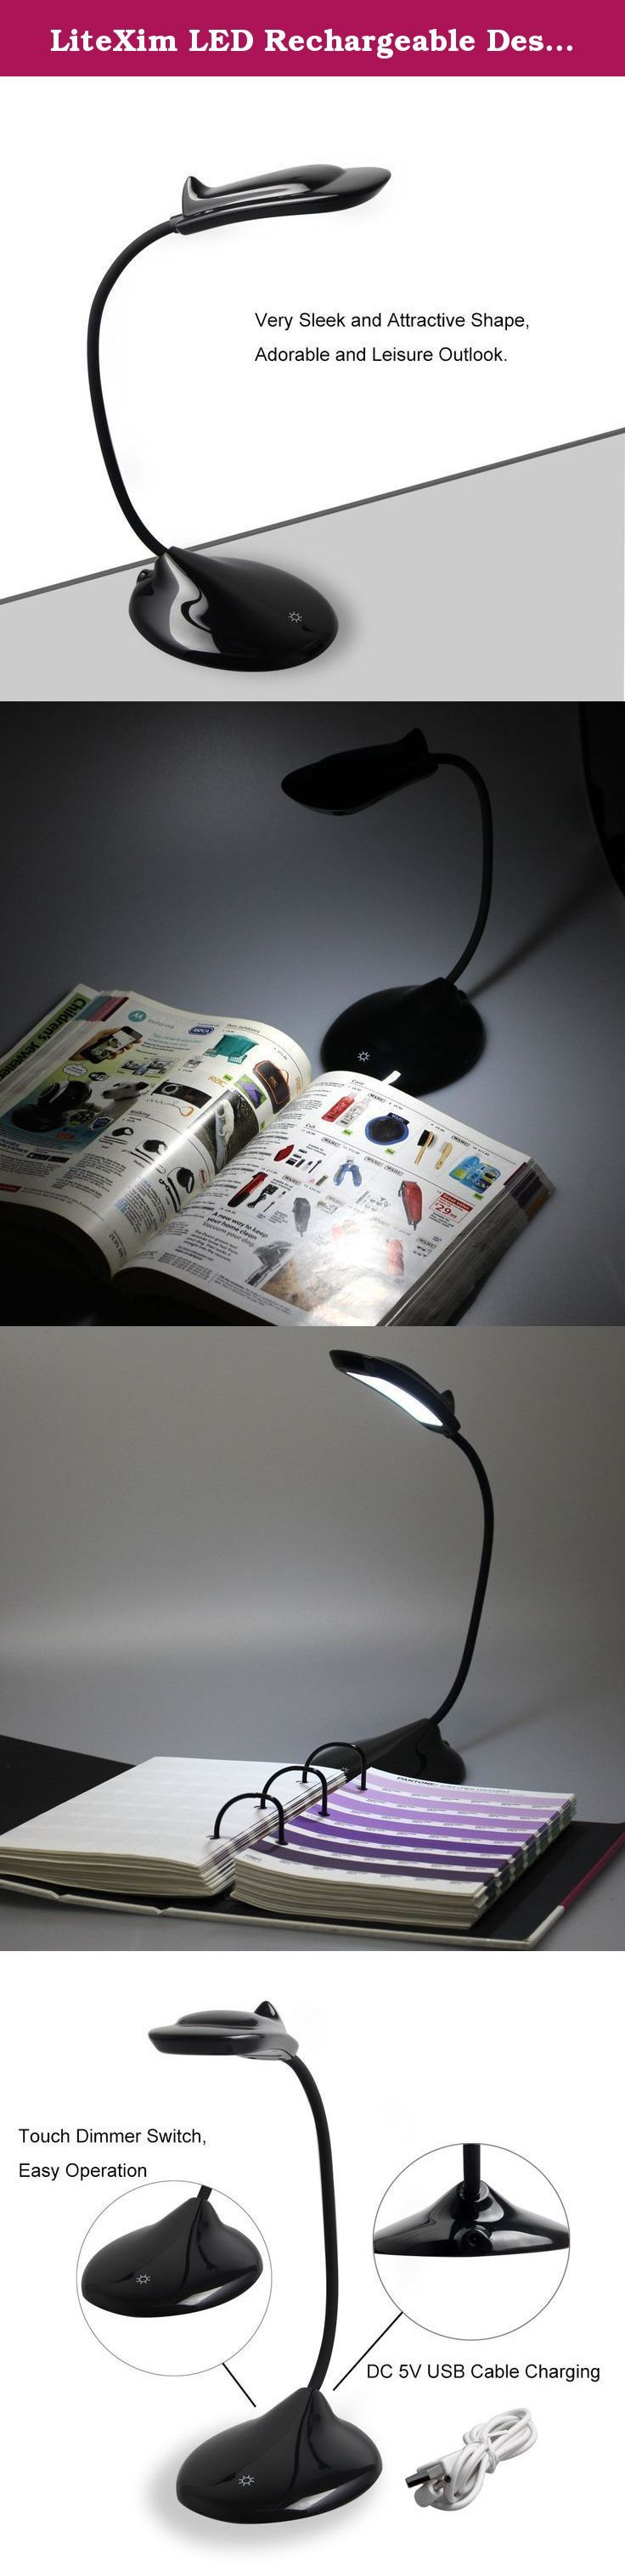 LiteXim LED Rechargeable Desk Lamp Modern Dolphin Designed Flexible Neck-Touch Control,3-Level Adjustable Brightness, Eye-Care Table Light USB Charging Port (Black). LiteXim Modern Dolphin USB Table Desk Lamp Description: This dolphin led desk lamp is modernize designed. With the gentle light, you can read and work casually indoor. 3 levels adjustable brightness, it will suit your need perfectly. Adjustable neck, you can adjust the light as you need. We focus on details, only want you…